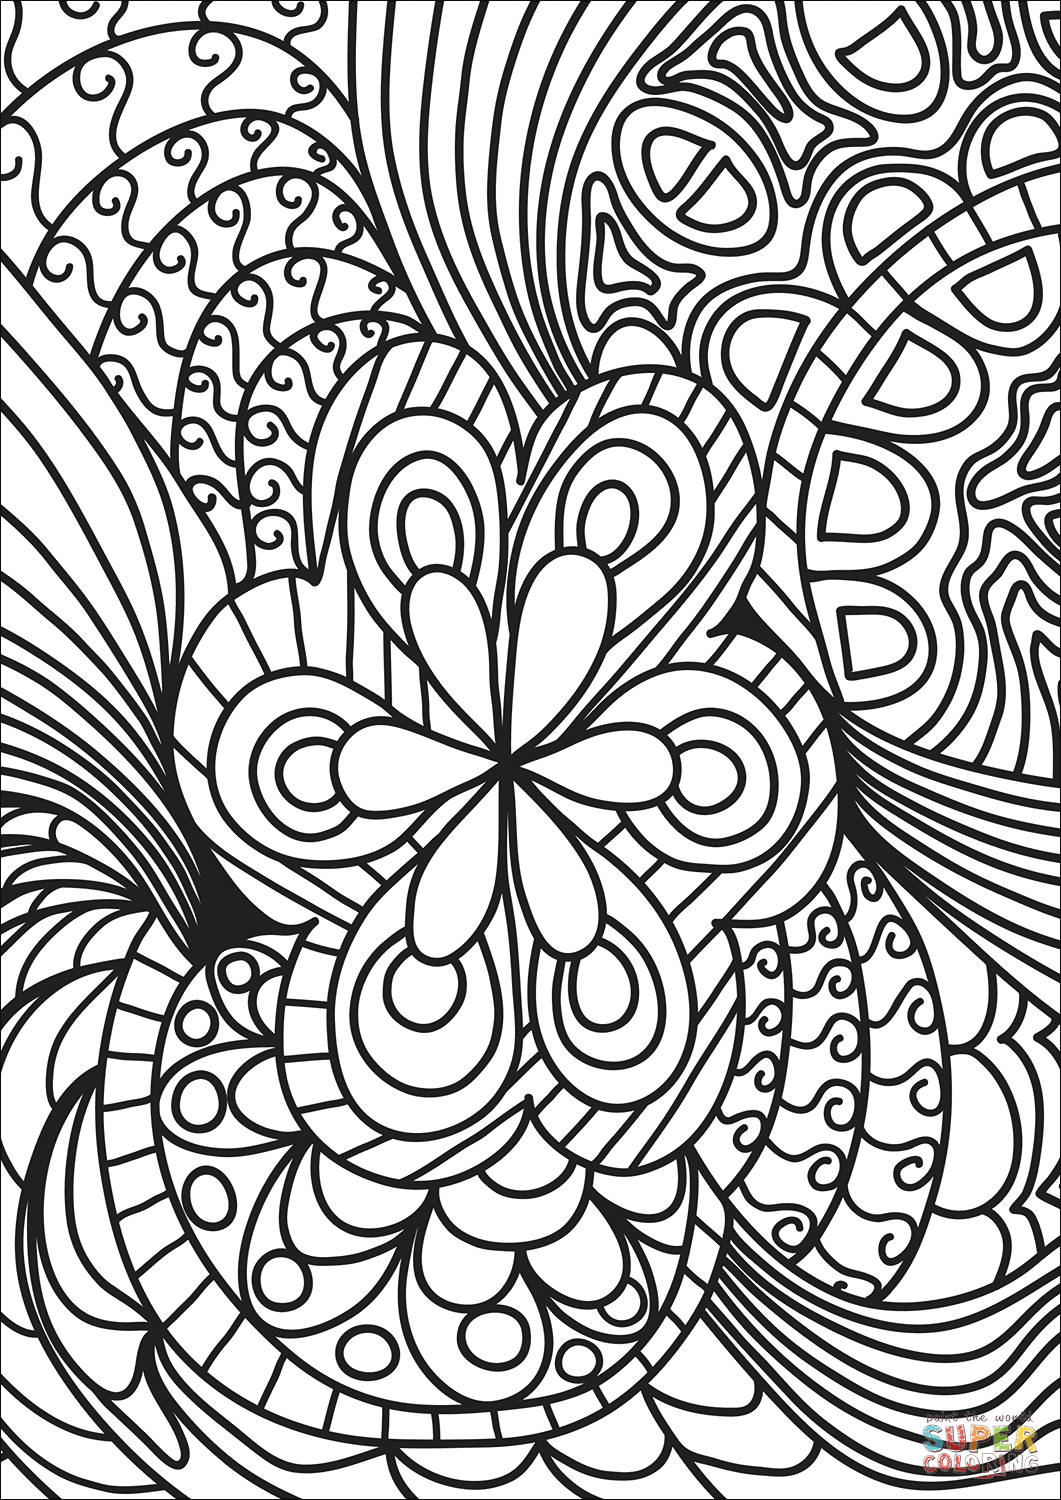 coloring page websites floral pattern coloring page free printable coloring pages websites coloring page